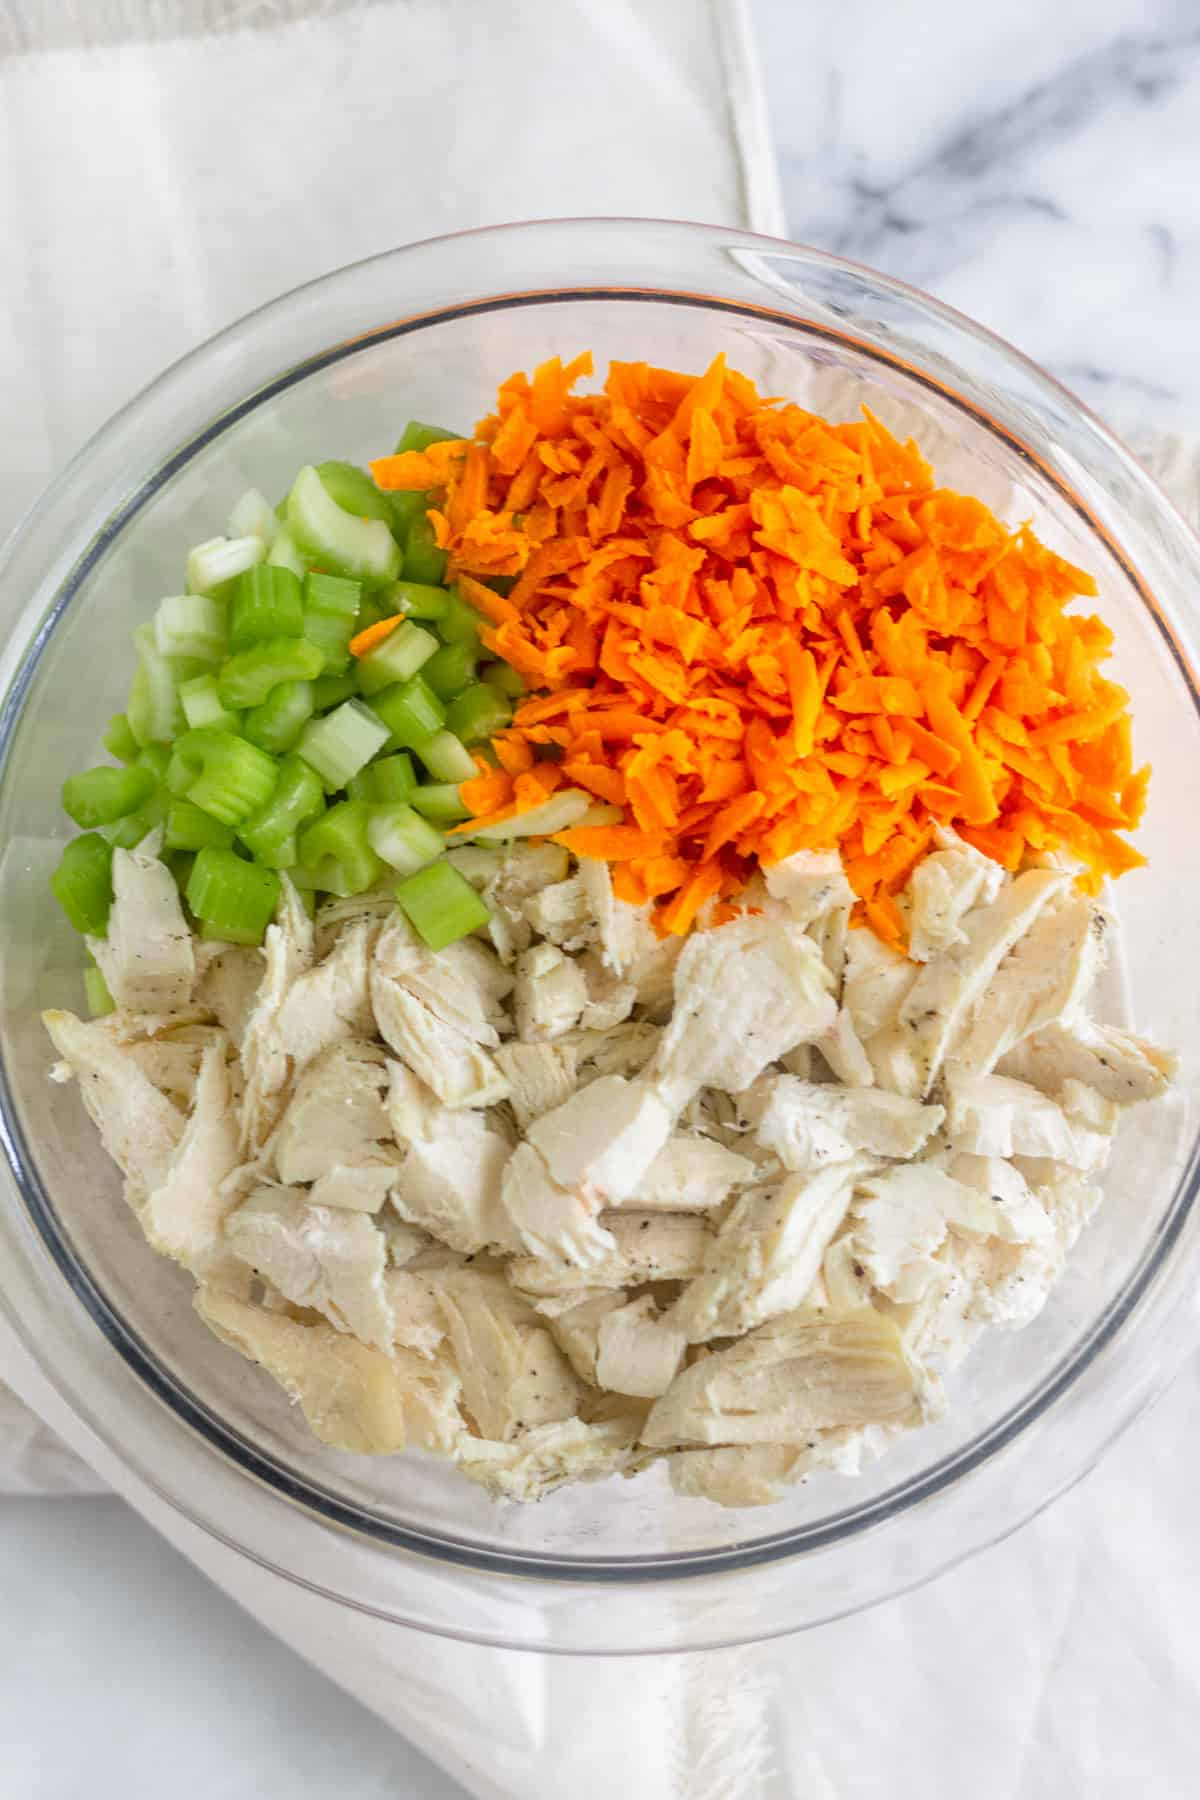 Glass bowl filled with diced chicken, shredded carrots, and diced celery on a white marble board